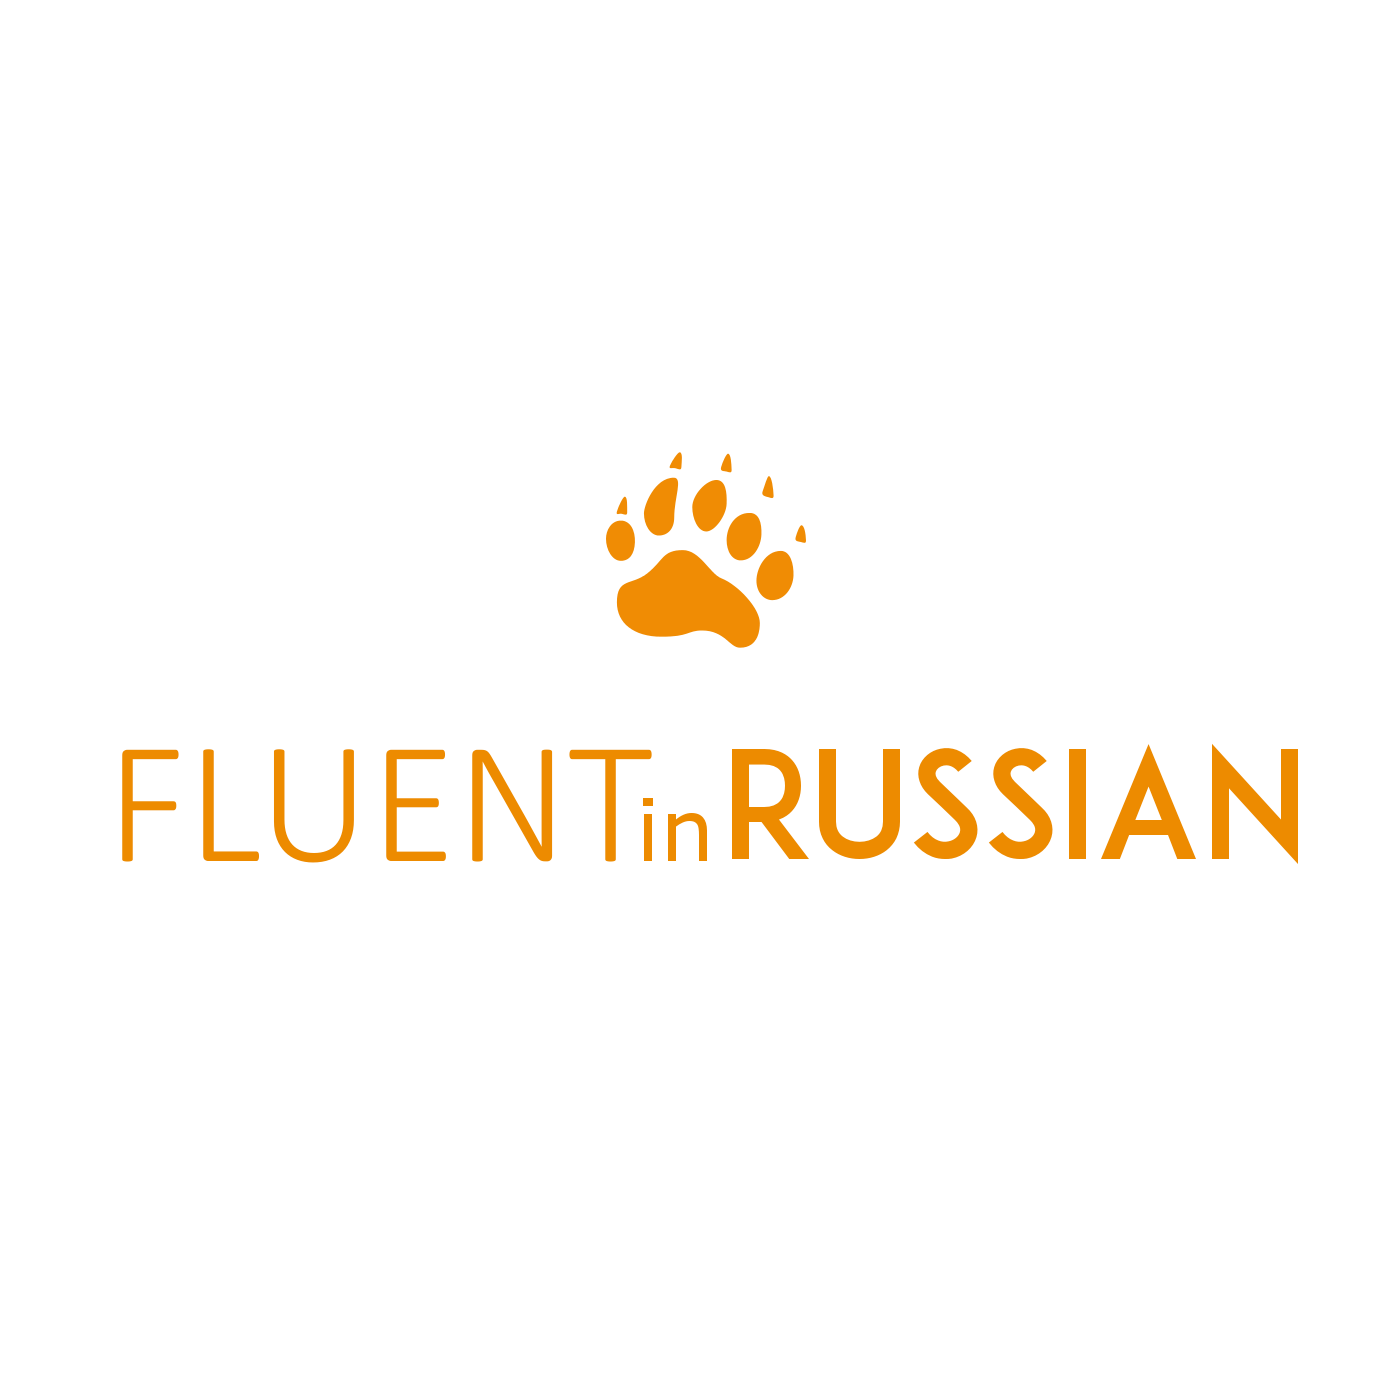 Learn Russian | Fluent in Russian